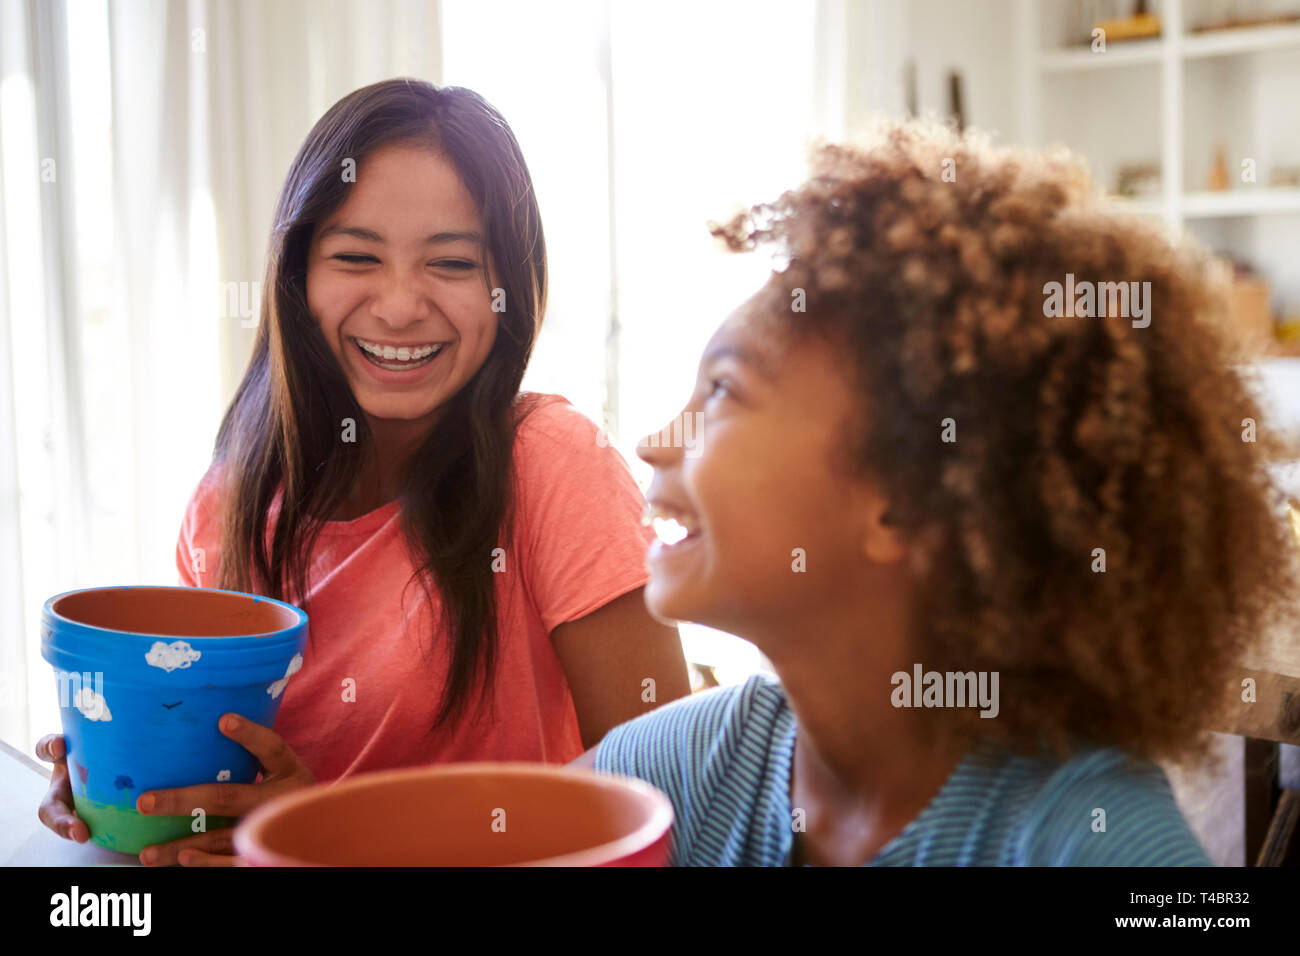 Laughing pre-teen girl and her older girlfriend holding plant pots that they've decorated with paints at home, selective focus, close up - Stock Image